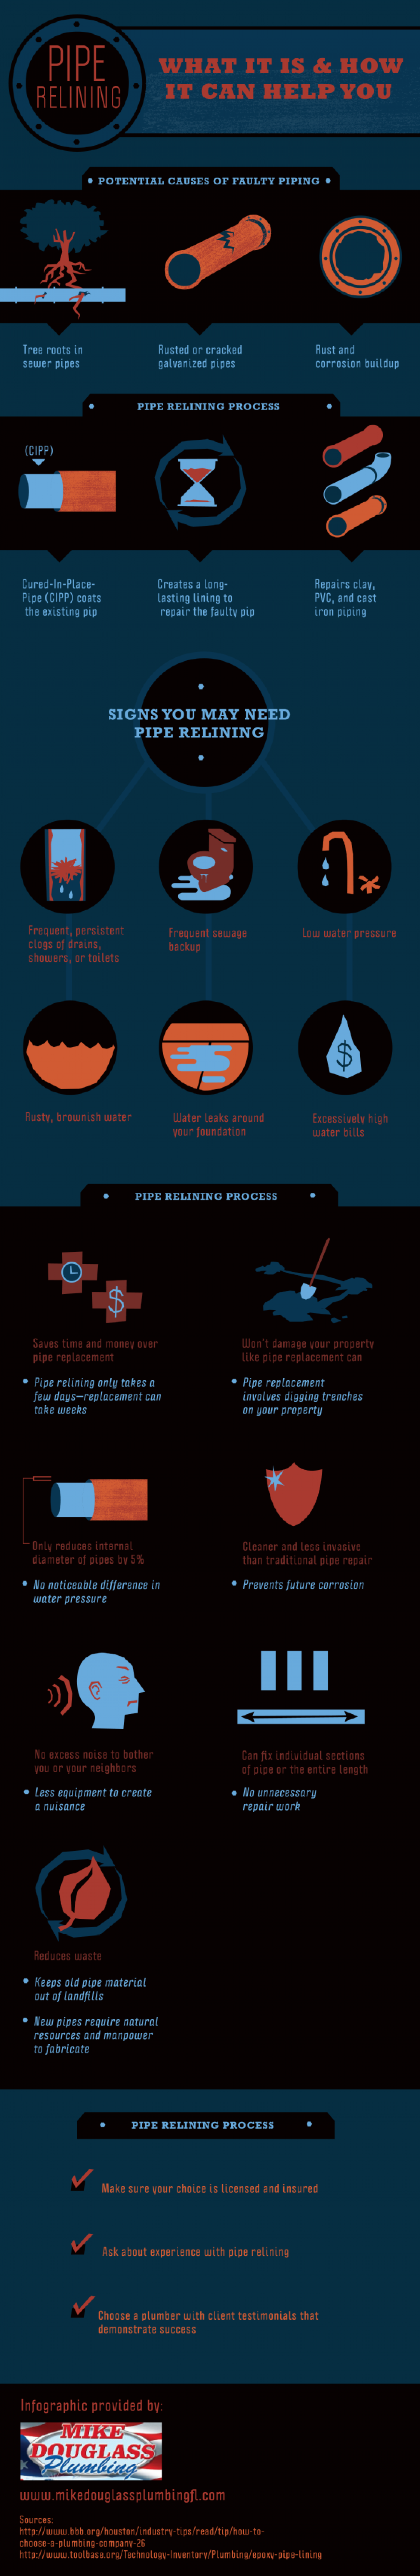 Pipe Relining: What It Is and How It Can Help You  Infographic